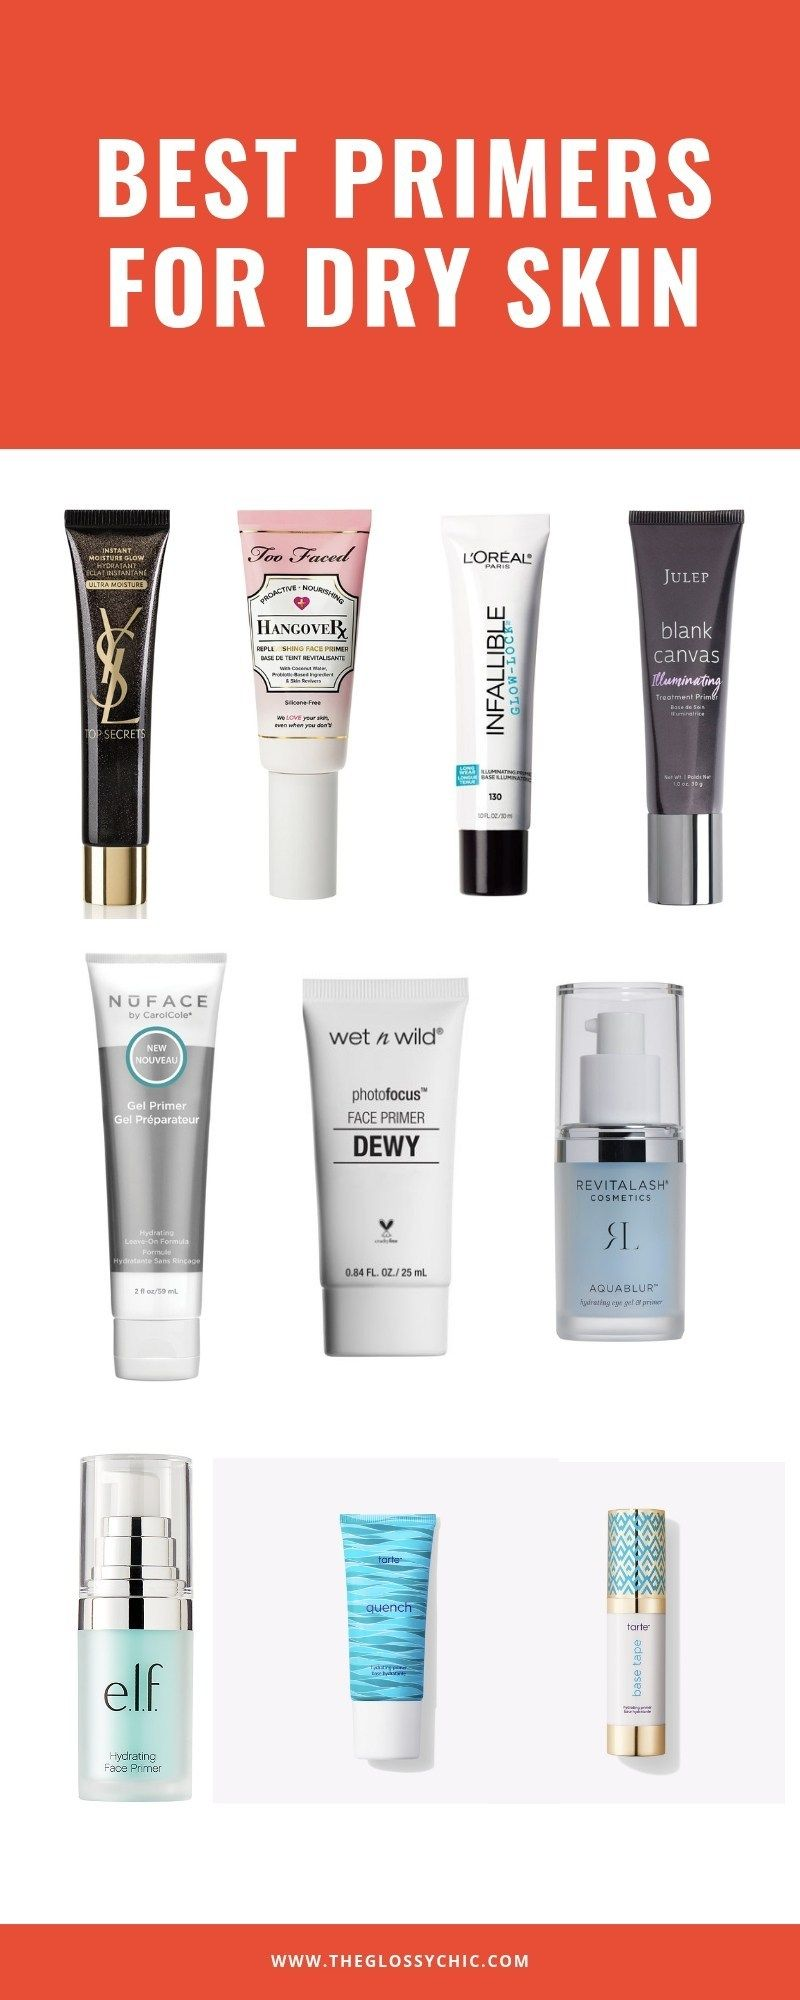 10 Best Primers For Dry Skin Primer For Dry Skin Lotion For Dry Skin Serum For Dry Skin